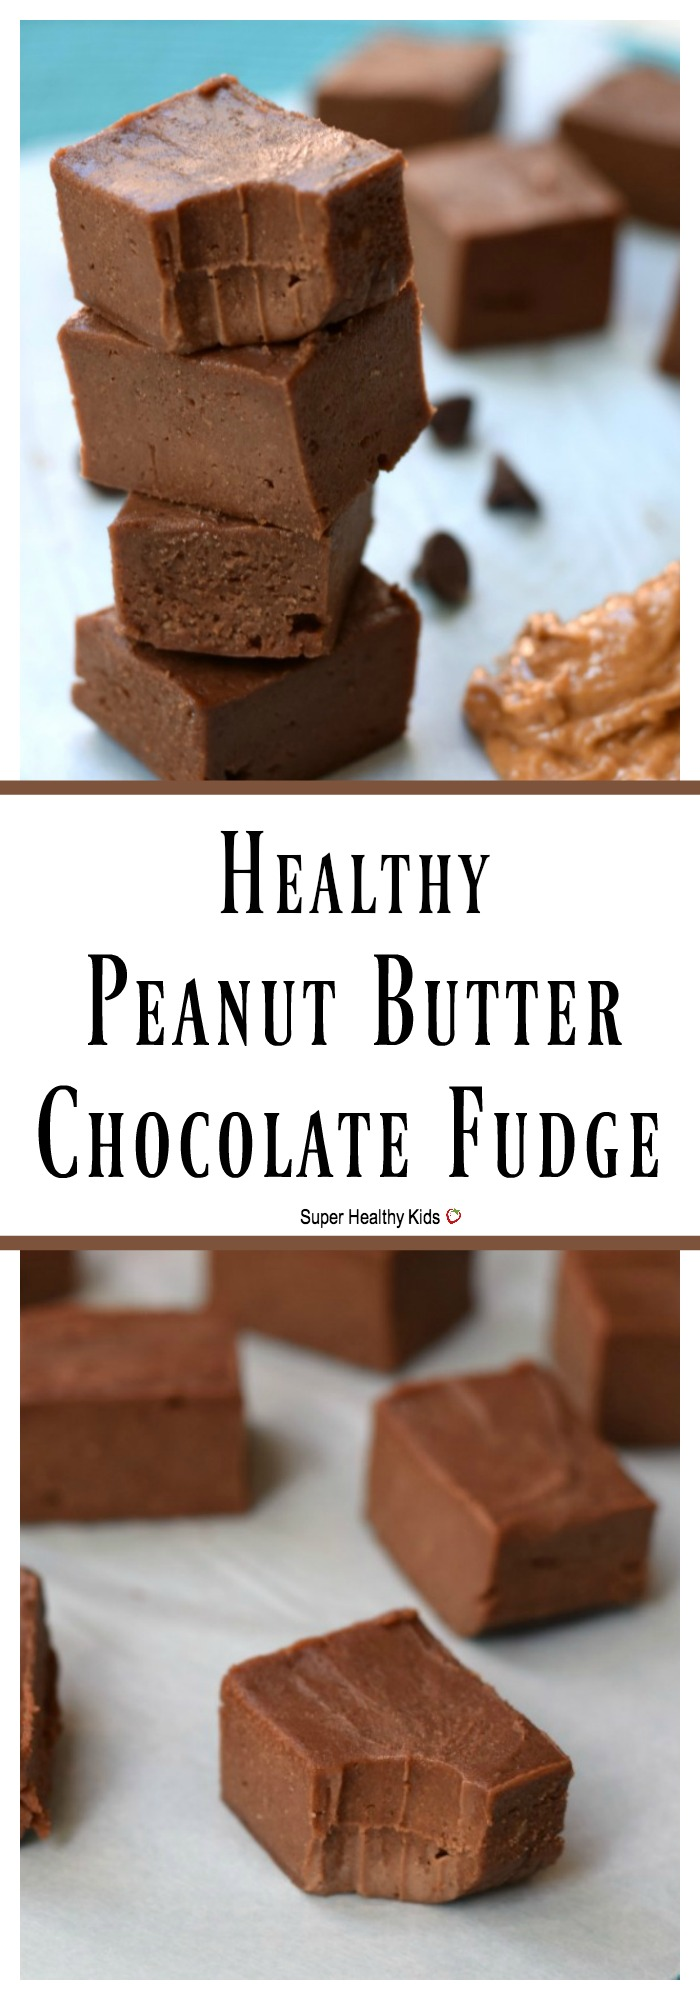 FOOD - Healthy Peanut Butter Chocolate Fudge. So creamy, and decadent you would never know there is fruit in it! http://www.superhealthykids.com/healthy-peanut-butter-chocolate-fudge/